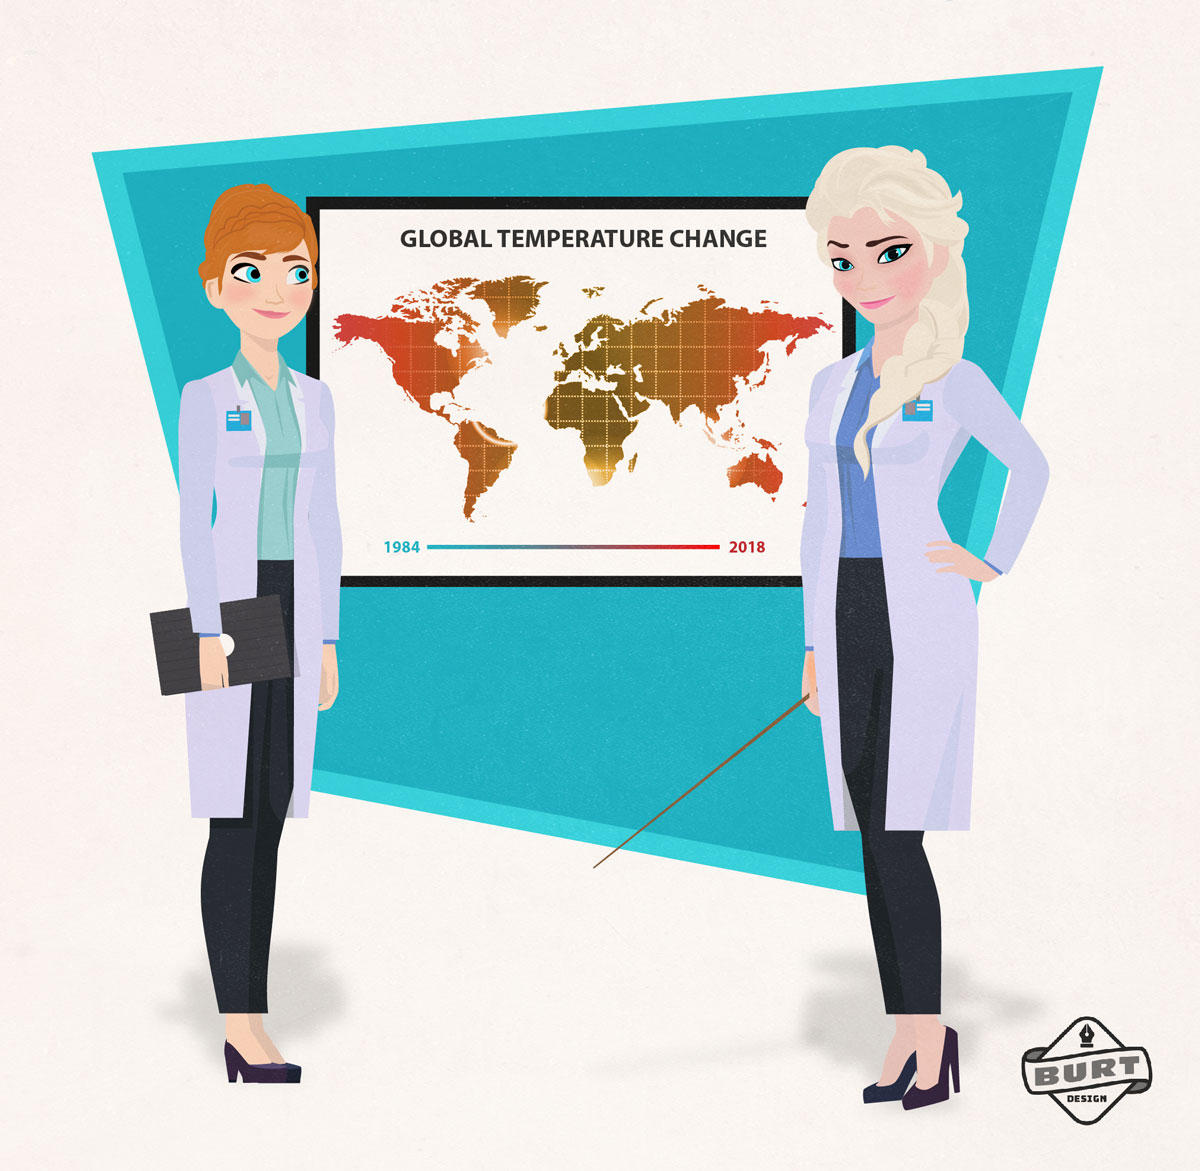 Elsa and Anna: Climate Change Scientists